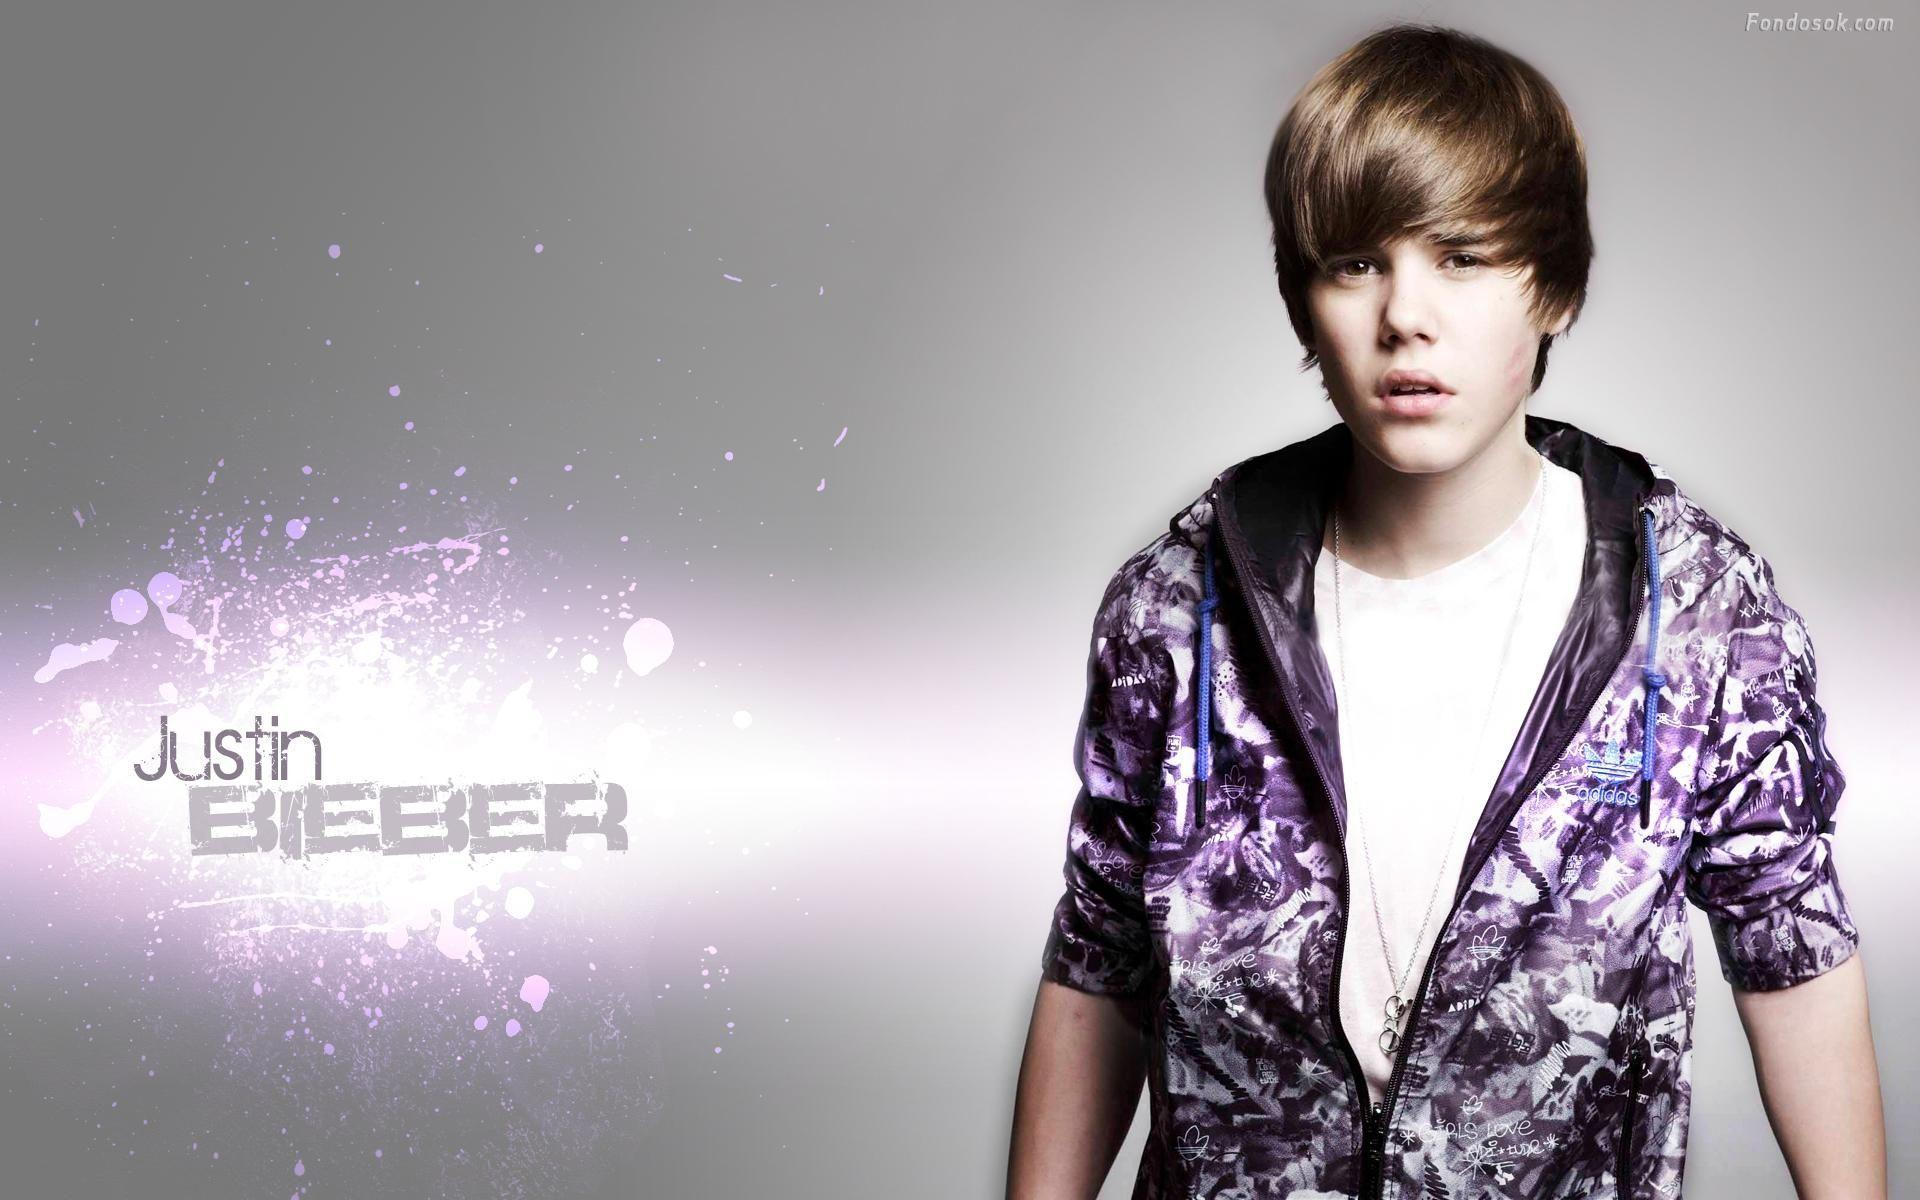 Justin Bieber Wallpapers HD Collection For Free Download